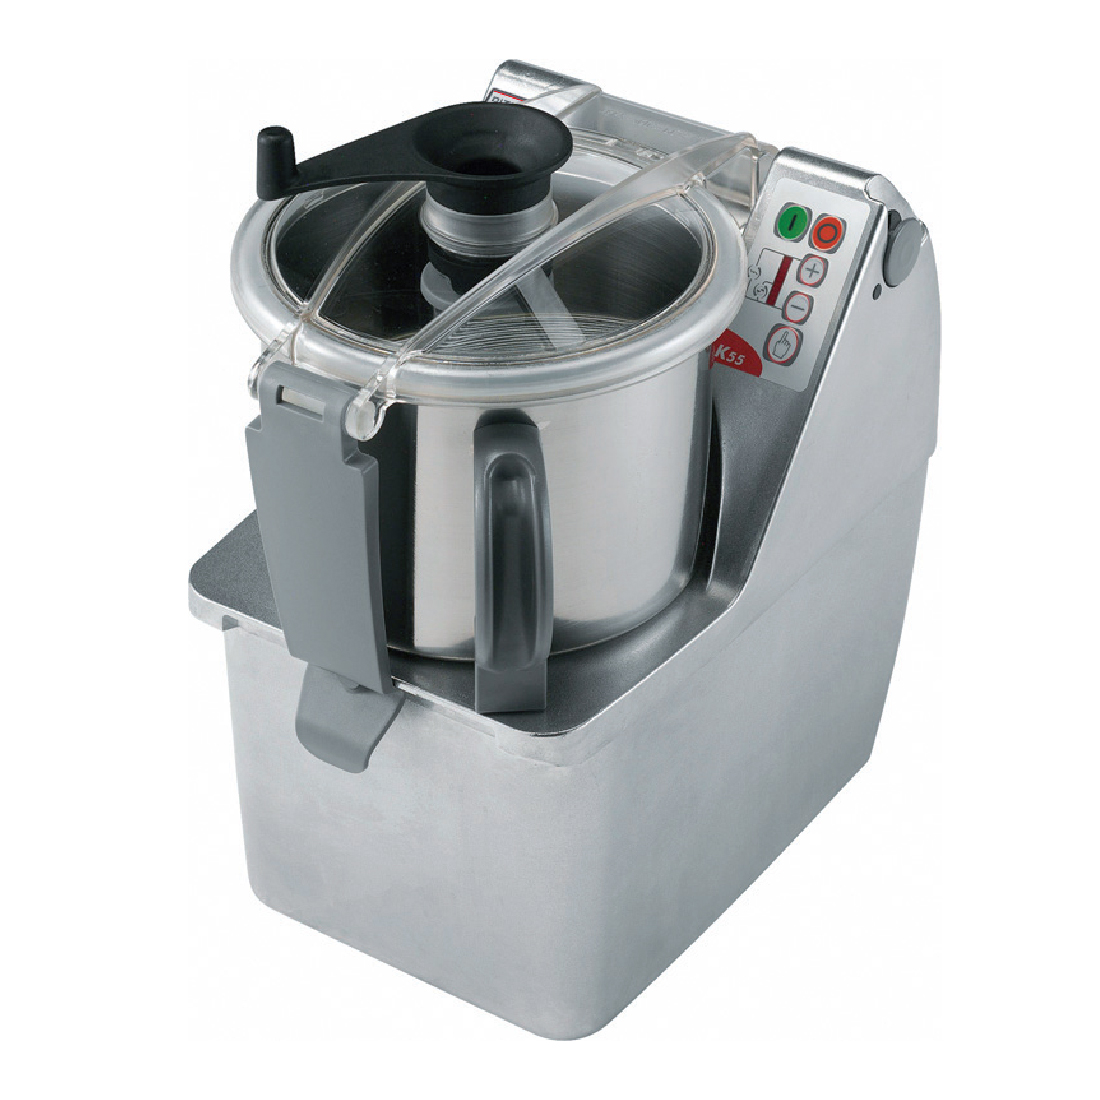 Dito Sama Food processor 4.5 litre single speed - K45